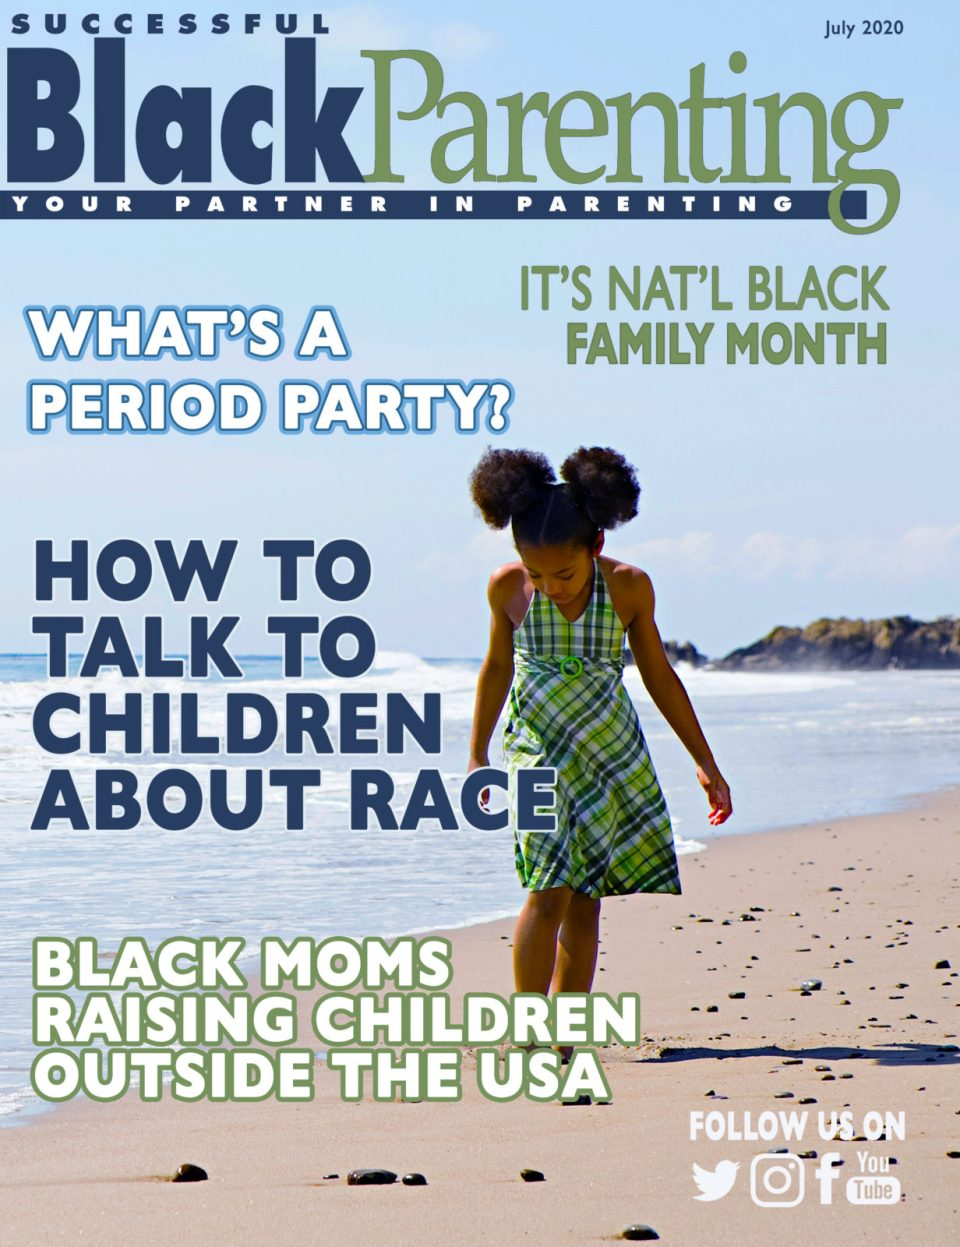 Successful Black Parenting magazine